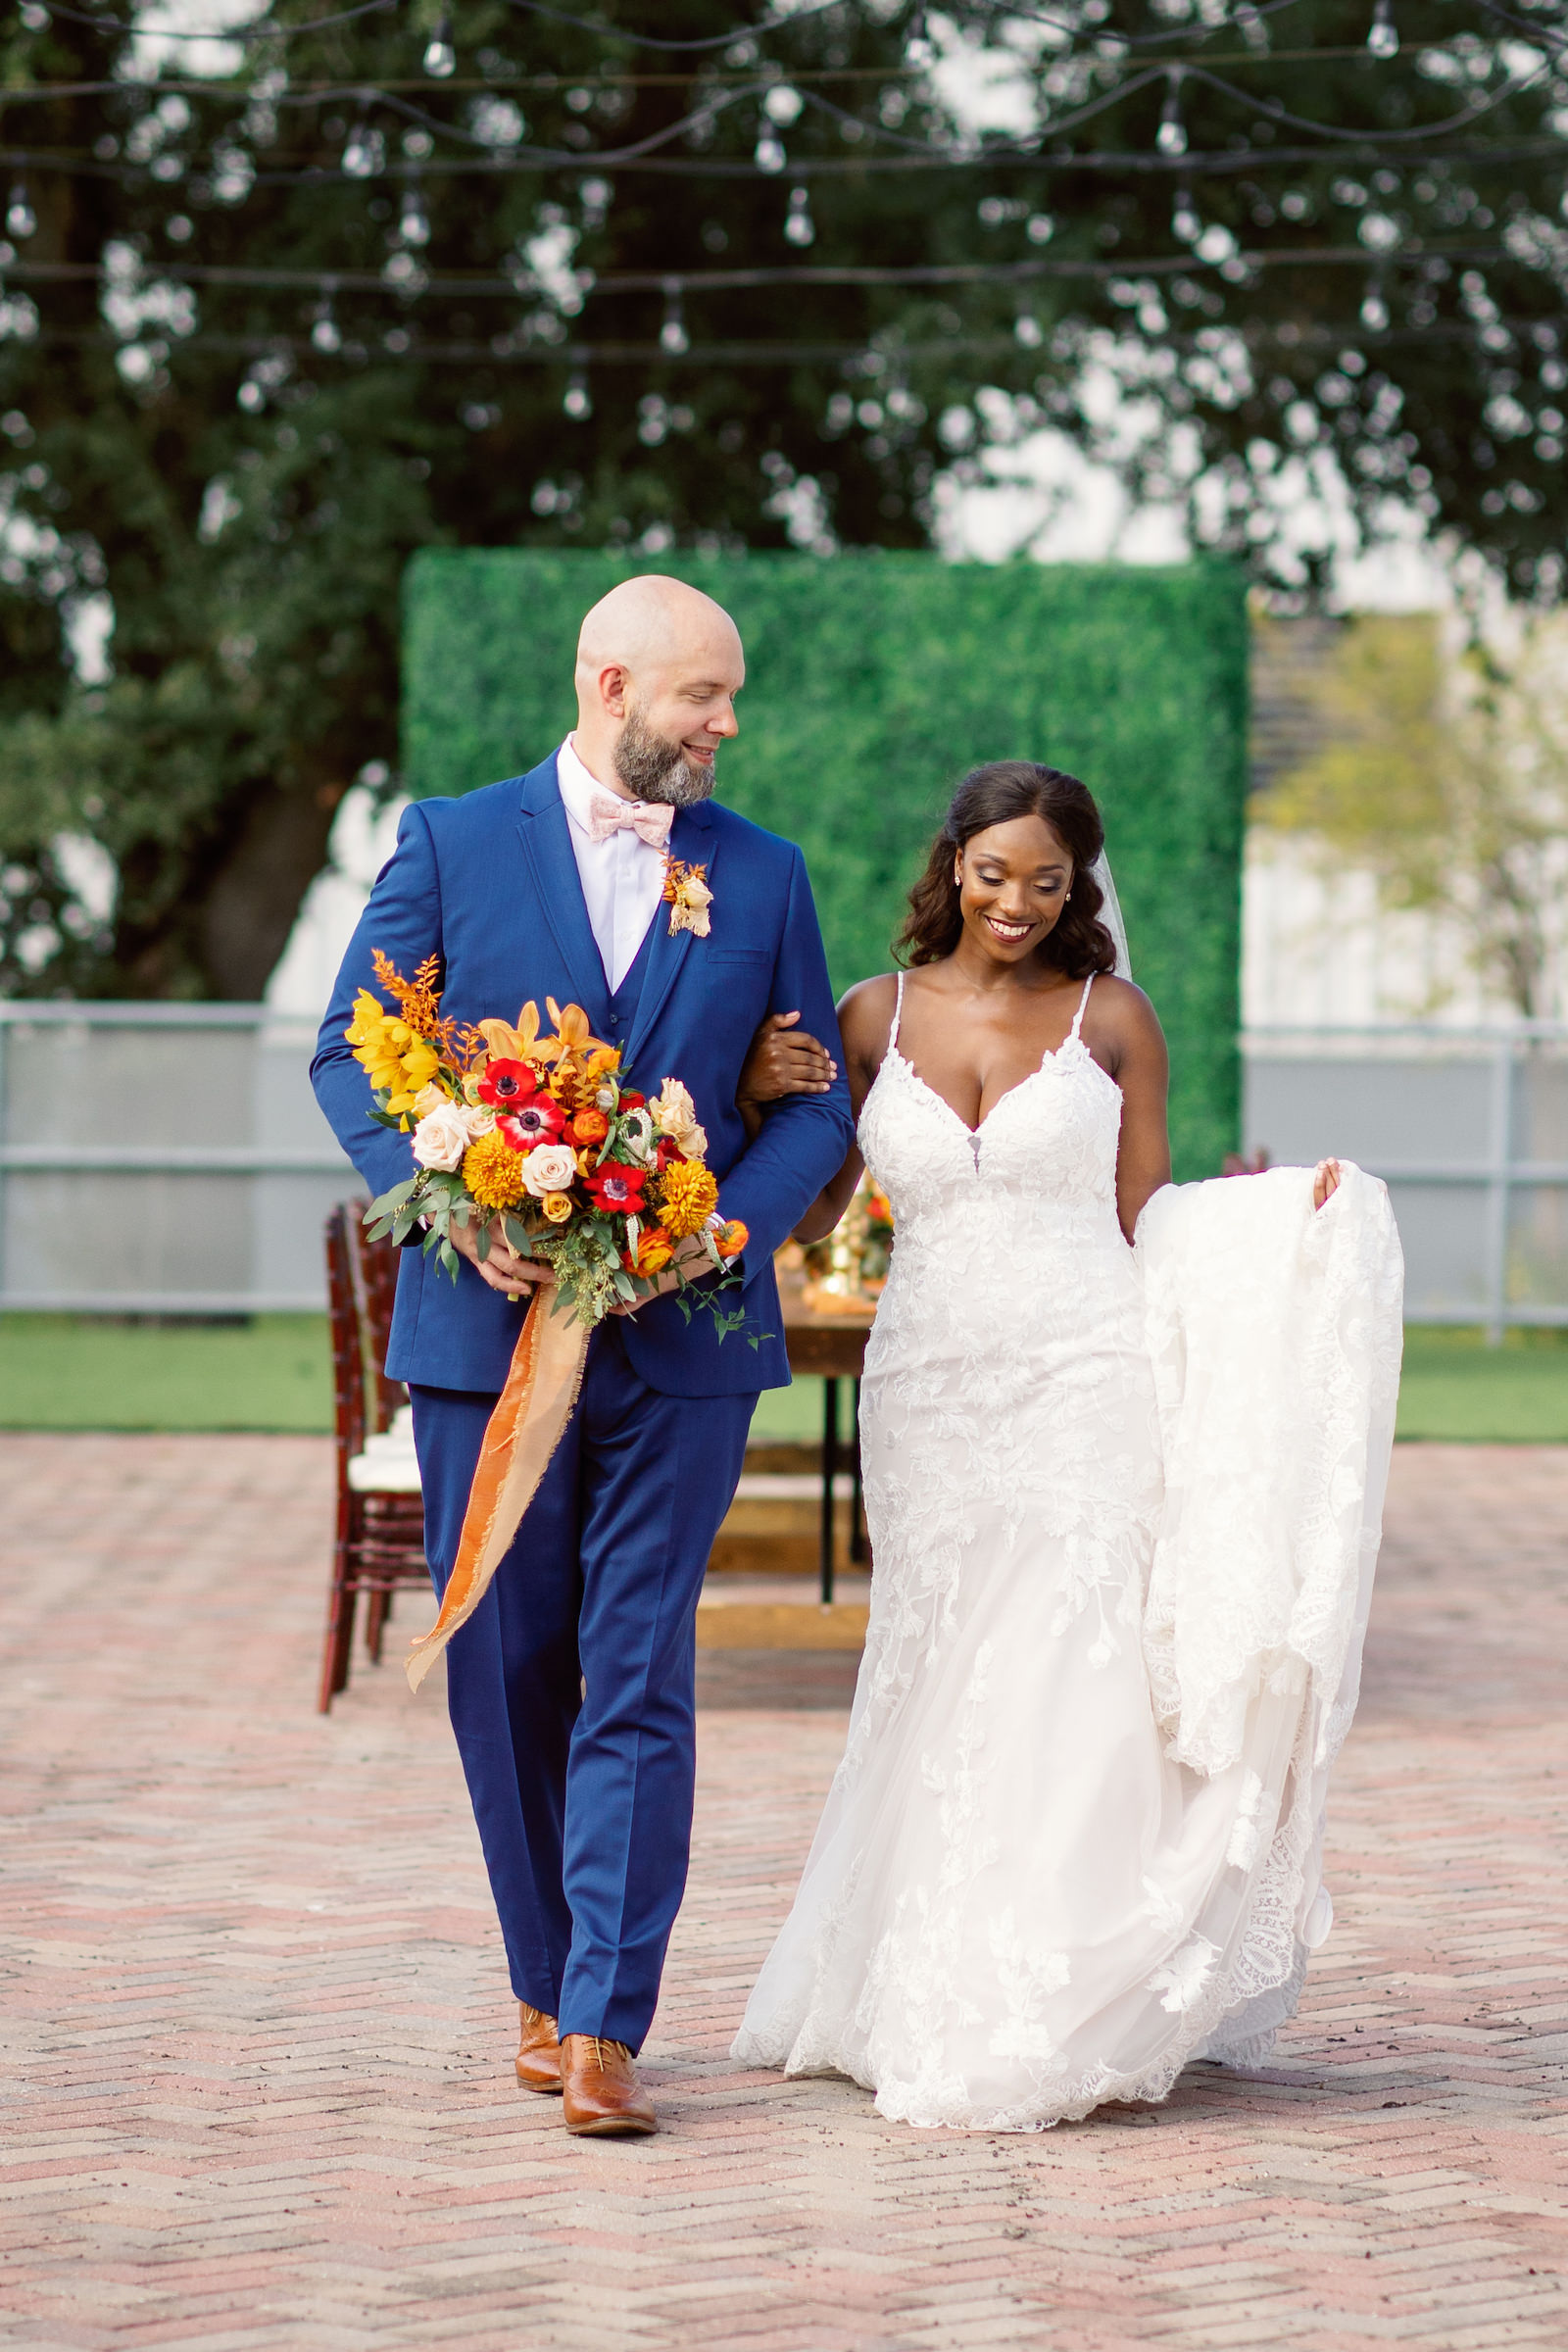 Downtown St. Petersburg Bride and Groom, Modern Boho Florida Bride Wearing White Lace Mermaid Style Dress, Groom in Dark Blue Suit Holding Vibrant Autumn-Inspired Floral Bouquet with Orange, Yellow, Red and White Florals   Tampa Bay Wedding Planner Coastal Coordinating